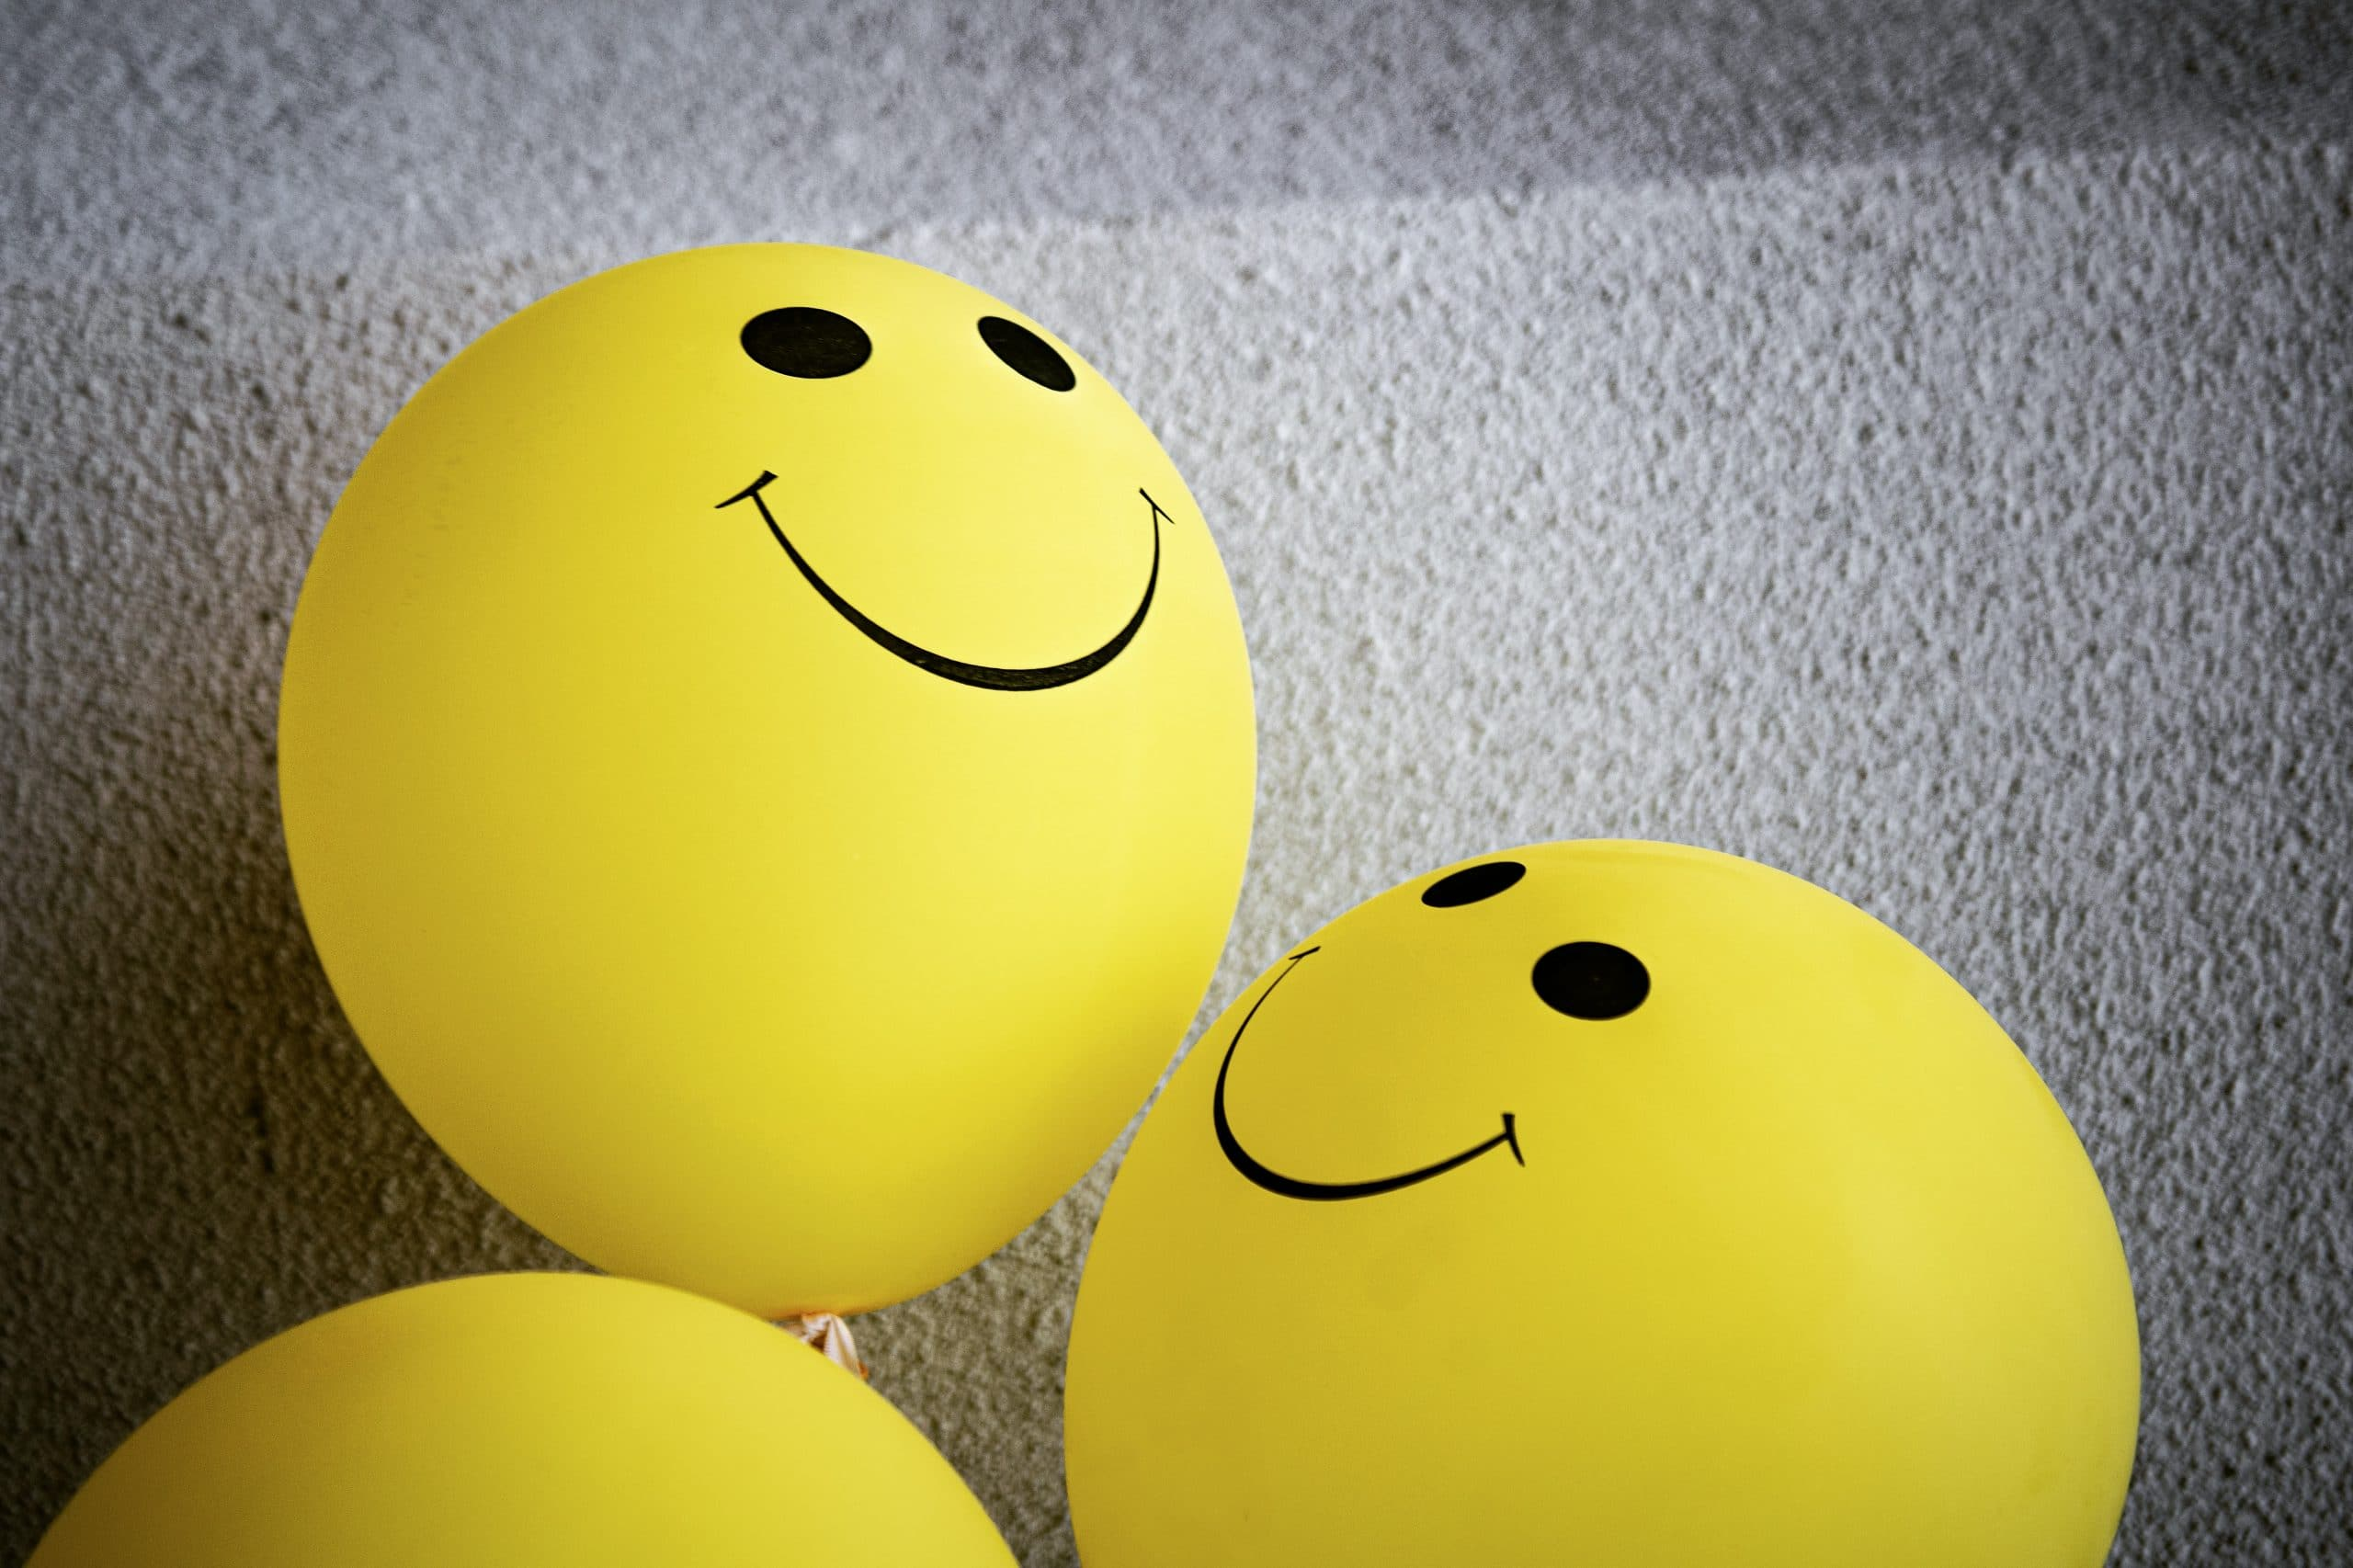 Smiling balloons signifying contact centers in the mental health space